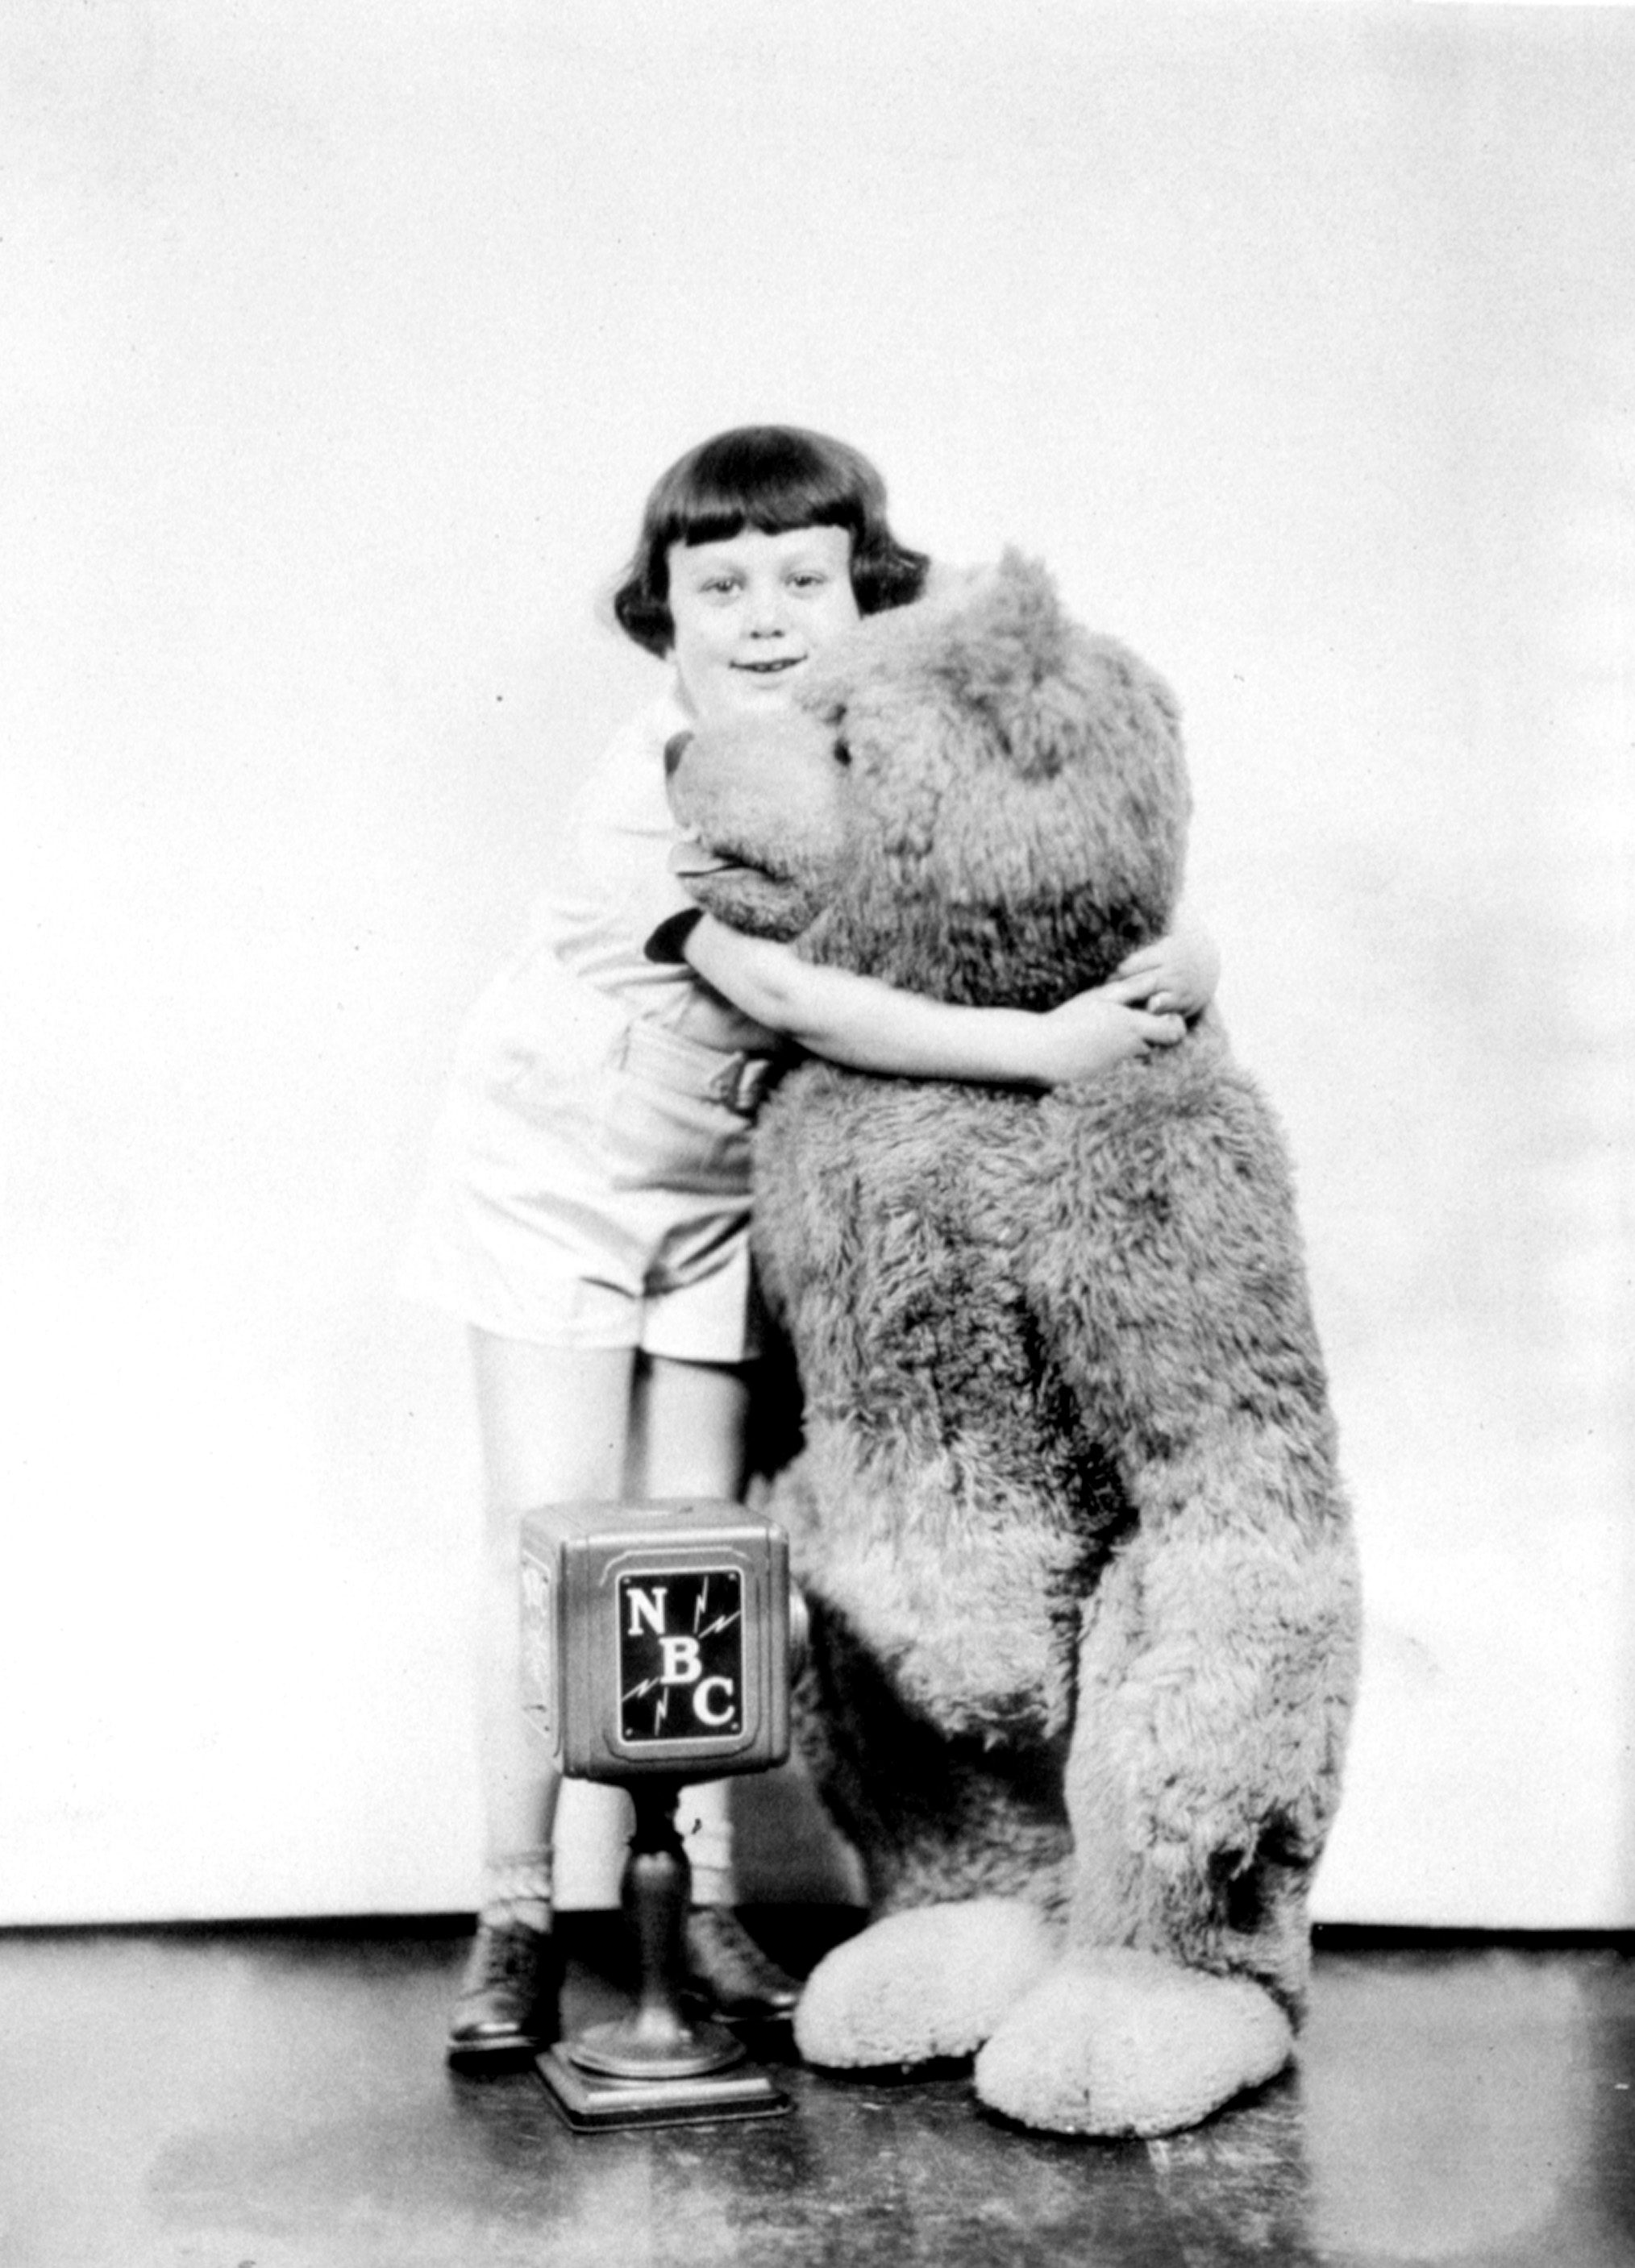 Mandatory Credit: Photo by Everett/Shutterstock (10284262a) Christopher Robin Milne with the original Winnie the Pooh, 1920s Historical Collection